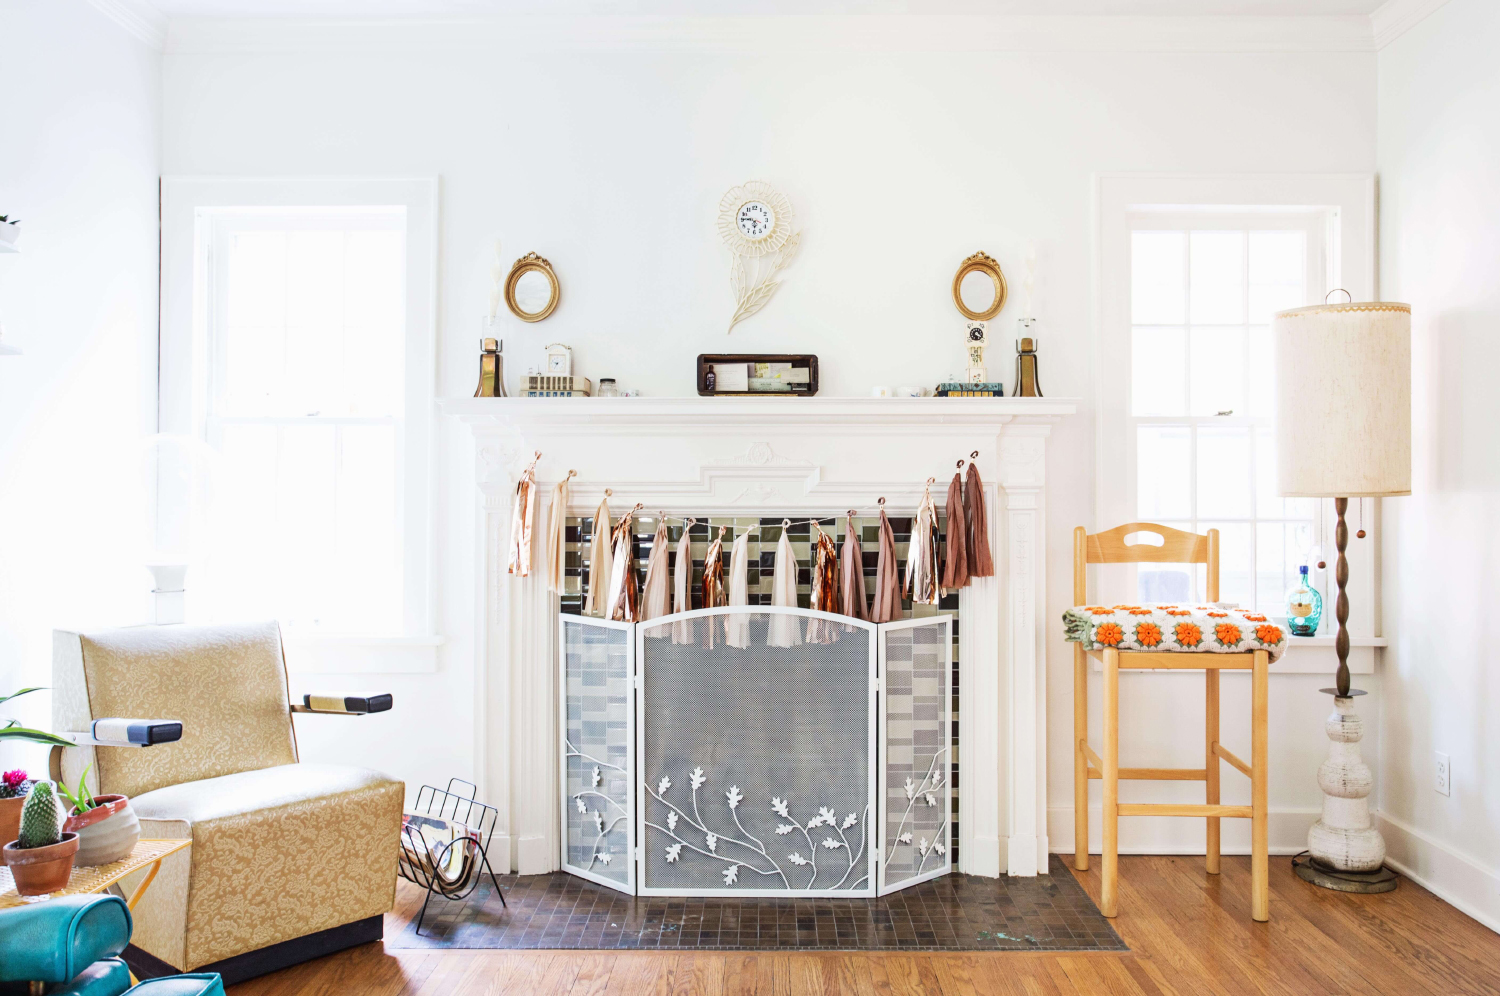 At Home with Jacki Moseley